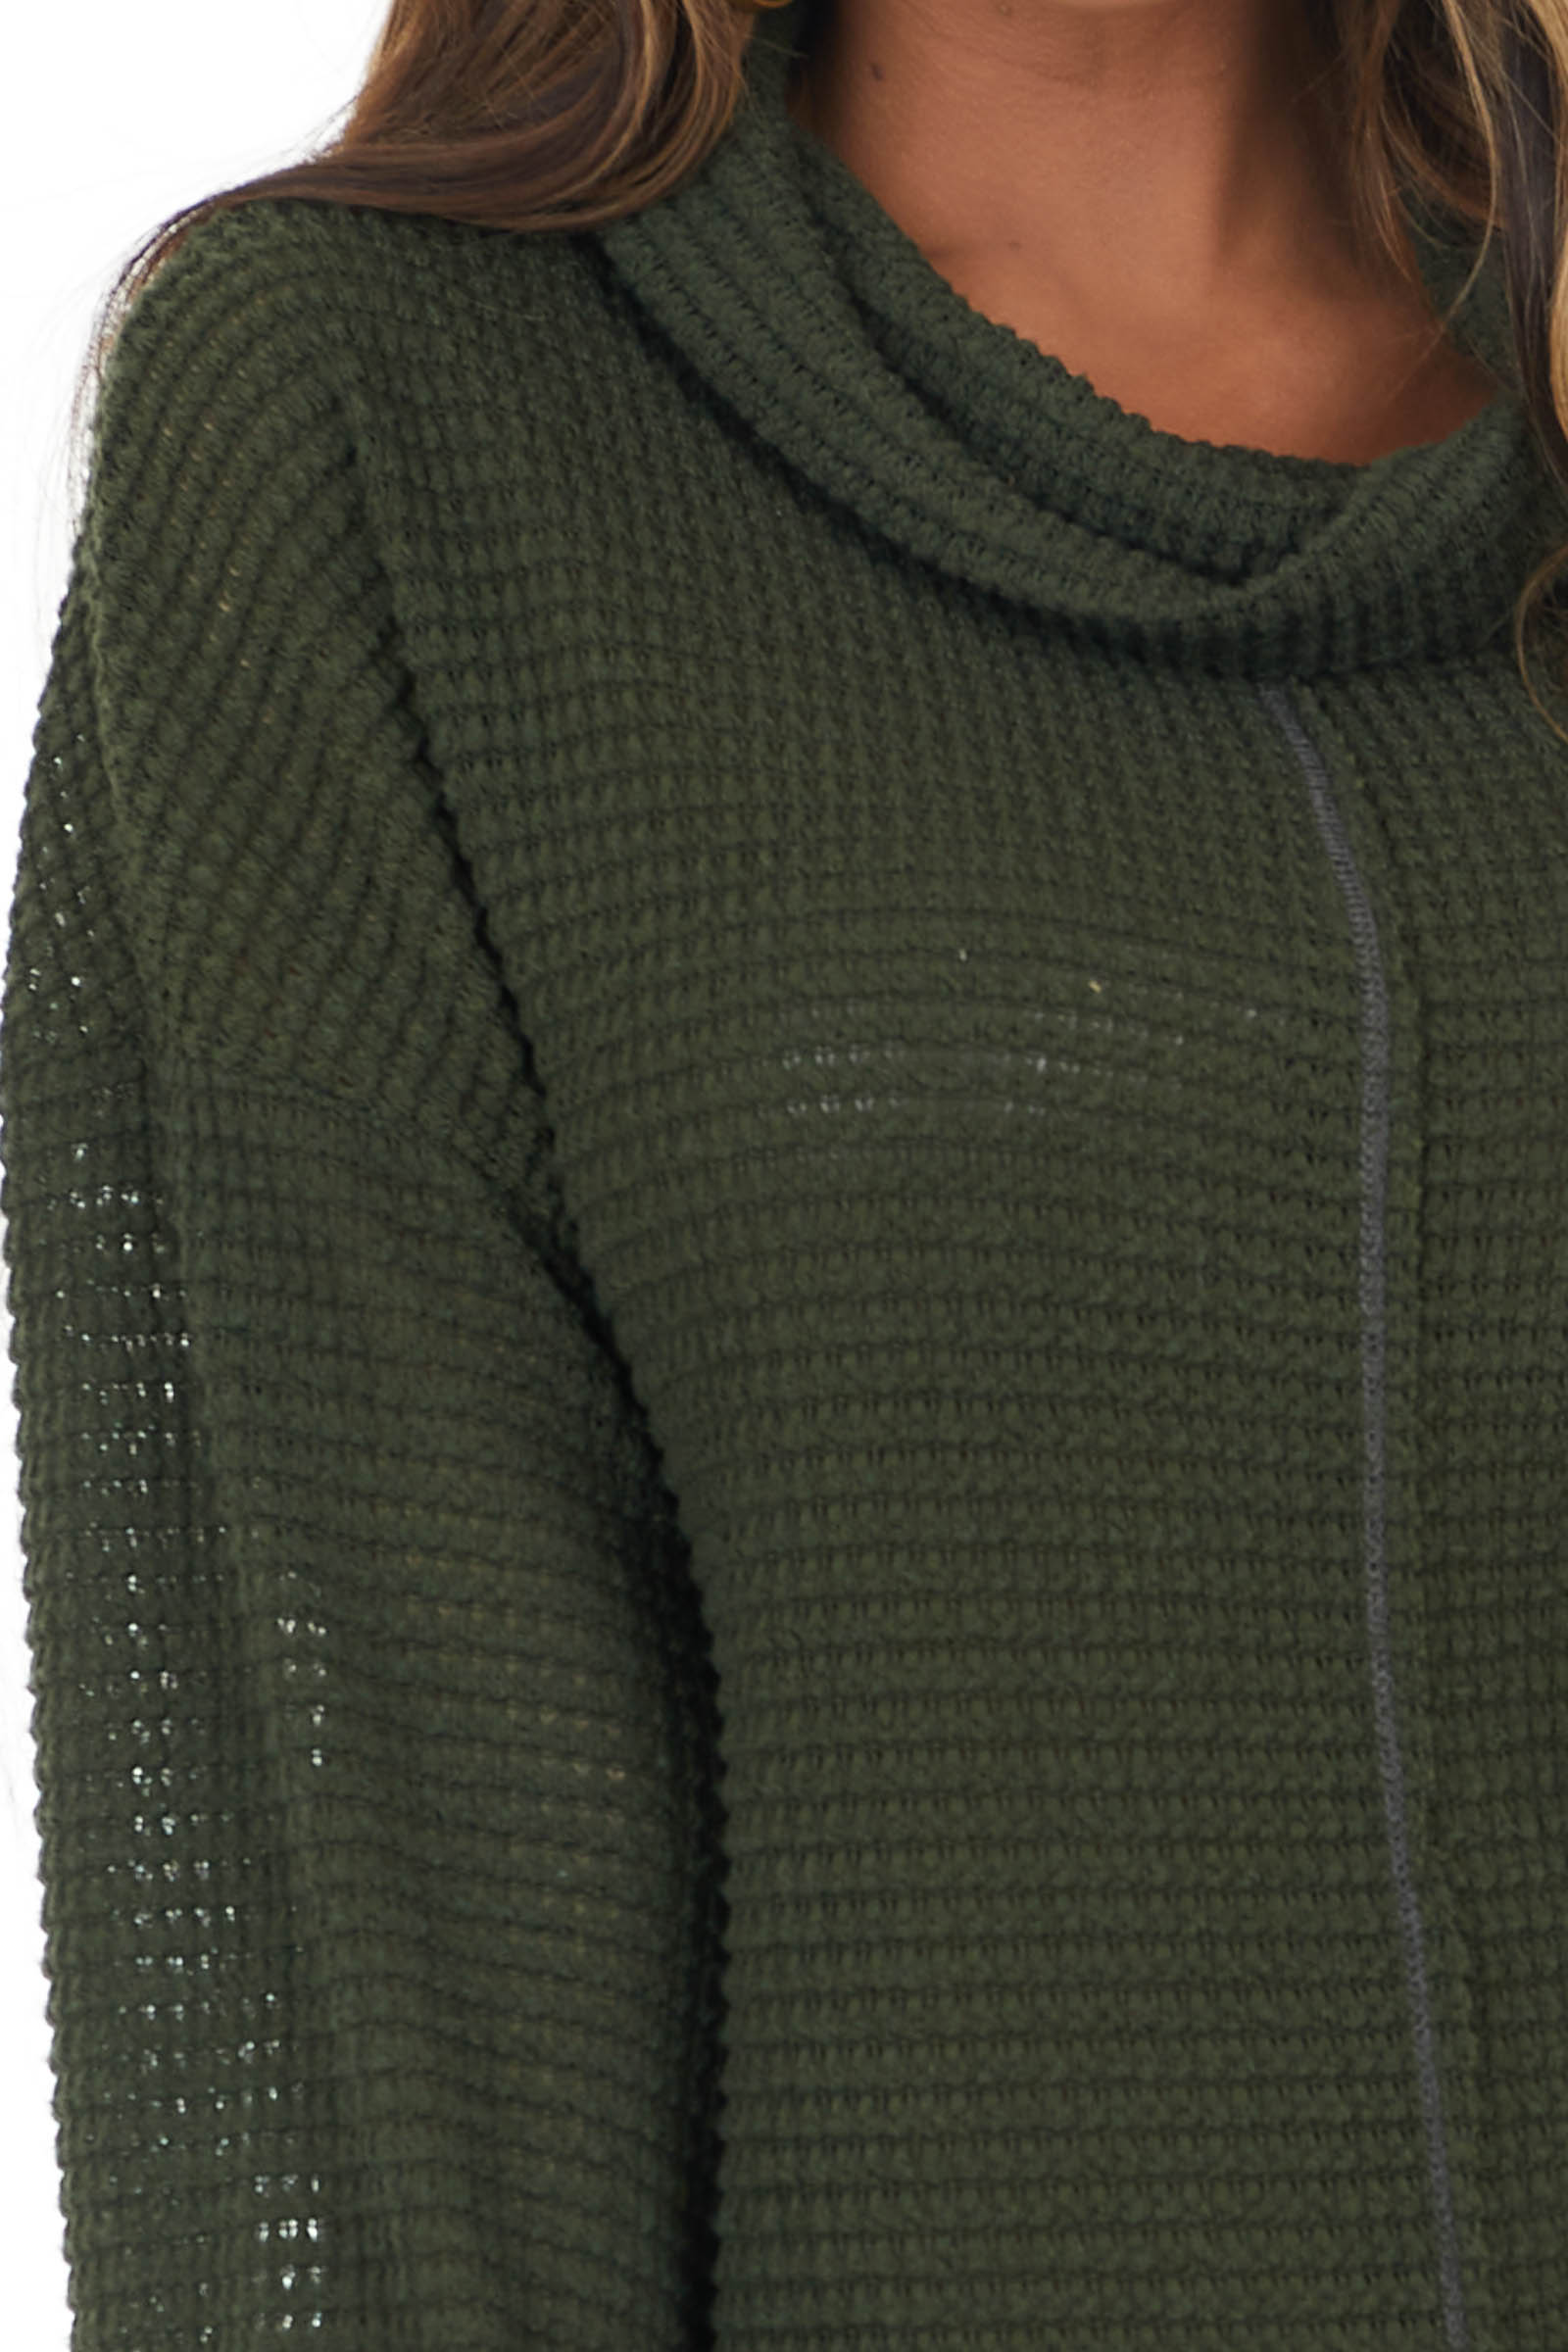 Dark Olive Waffle Knit Long Sleeve Top with Cowl Neckline